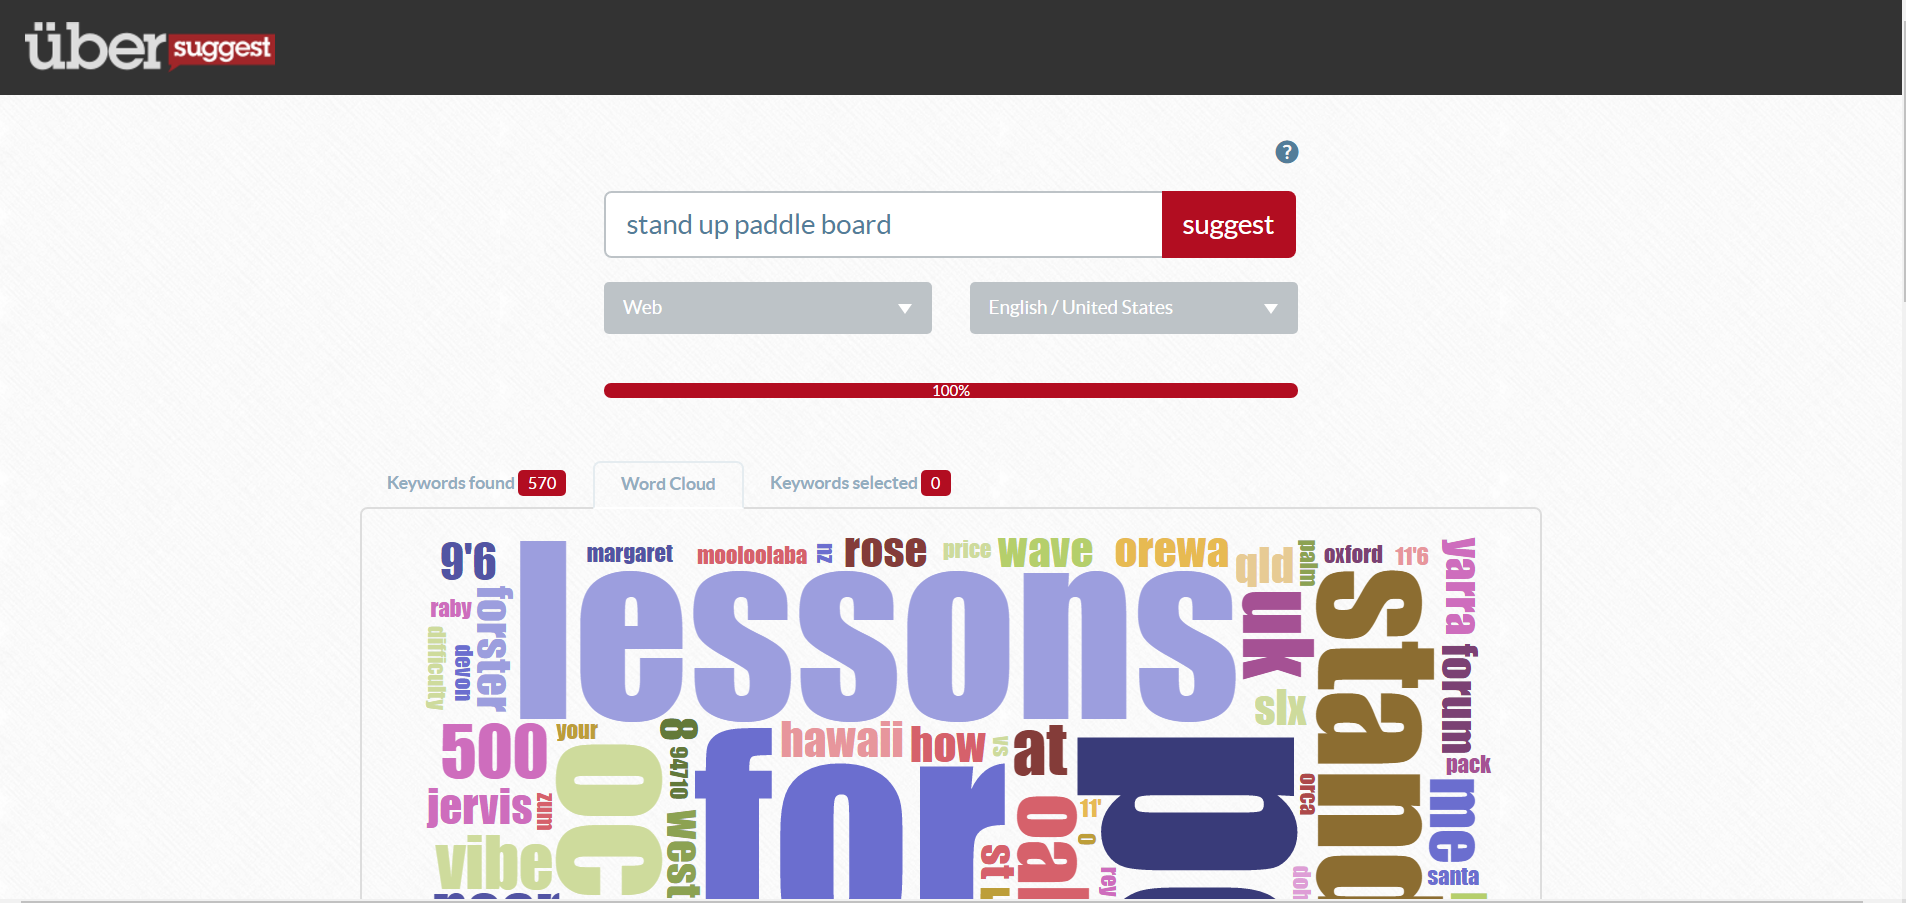 Ubersuggest Stand-Up Paddle Boarding Search